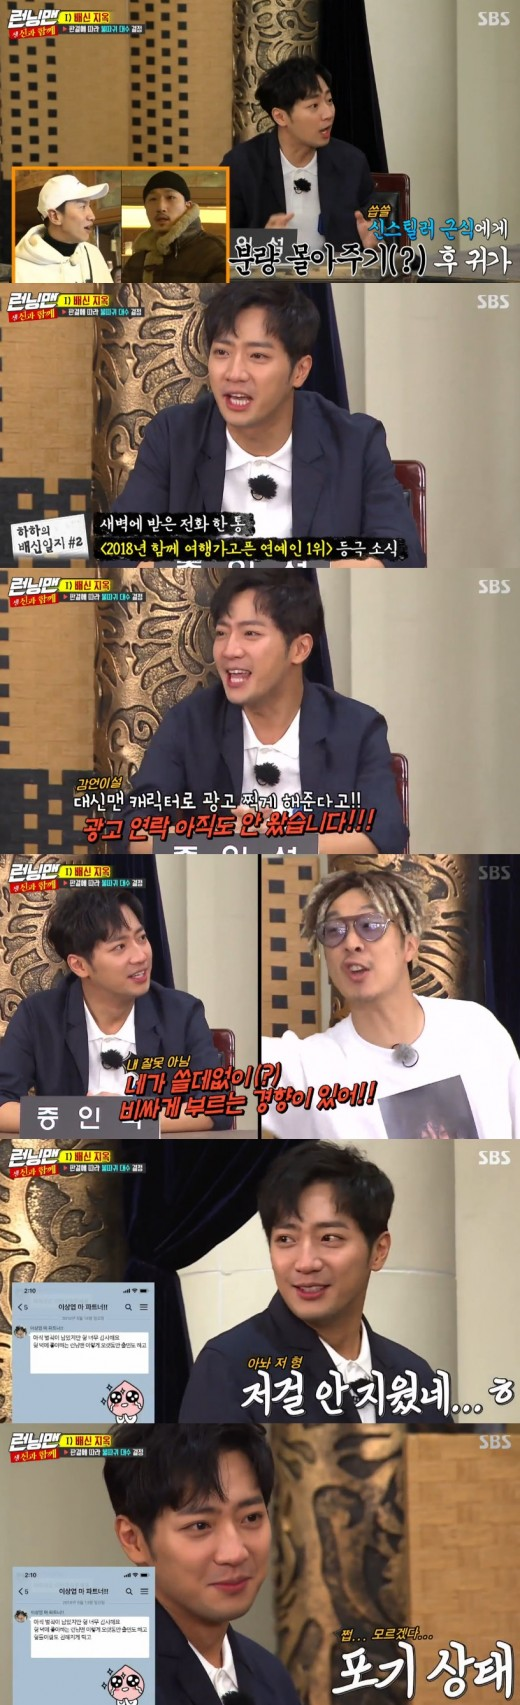 <p>Presence over quantity. Lee Sang-yeob also did a job.</p><p>Lee Sang-yeob appeared at the guests at SBS Running Man on the 26th, boasted of the crowning entertainment feeling.</p><p>Lee Sang-yeob who joined Running Man for long-term guests reappeared in a month. Though the broadcast of this day was decorated with God special feature, it was dressed as a witness to prove the death of Haha and Lee Kwang-soo.</p><p>Lee Sang-yeob received a telephone call by Haha who was pleased after receiving the Acting Grand Prize Excellence Award last year and said, I was awarded the Teen Star Prize, but told me to come to receive the goods, ran to one dullium However, what I received was a piece of paper waste and a plastic bottle, and Hahas friend Gunsik came to the mold and shared the amount of only low wages. </p><p>Lee Sang-yeob also got a phone call from Haha, who was chosen as No. 1 entertainer who wants to travel together with 2018, despite being asleep, even to the special feature Running Man Tsushima Featuring Tsushima I was going out.  Waiting for such Lee Sang-yeob is exactly a pedometer hell.</p><p>Lee Sang-yeob said, I told my main character of entertaining newborn baby to main line to decinemen and I got AD contacts did not come AD contact did not come.</p><p>Haha said, There is a tendency for you to call you high, not at that time yet.</p><p>In addition, he said, I received the letter, thank you for making clear the decimen character, thanked me, and expressed my gratitude to the representatives of my company. When the evidence letters here are released, Lee Sang-yeob surrender to the end.</p><p>Also, Lee Sang-yeob became a moderator as a witness as if he gave the slaughter Yoo Jae-seok a slap-penalty penalty, and he led the game and boasted a presence beyond the quantity.</p>